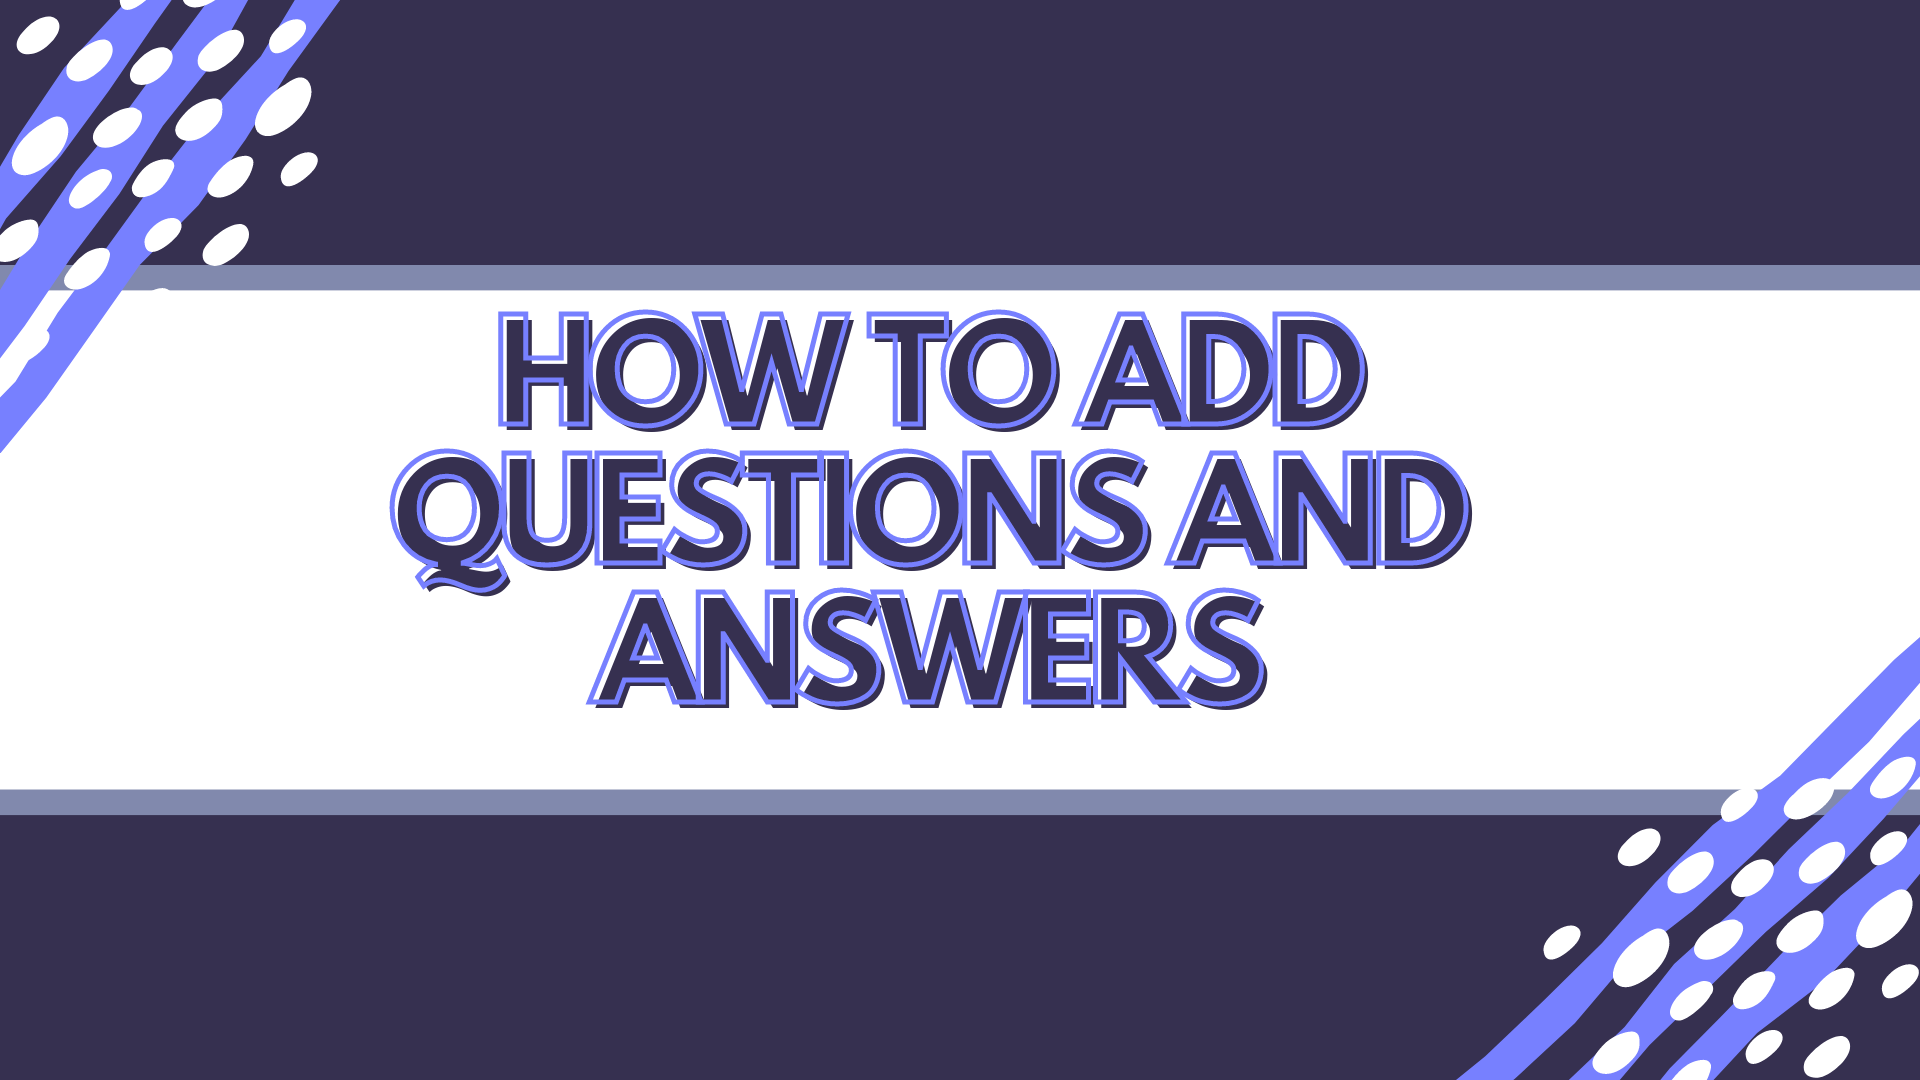 how to add questions and answers